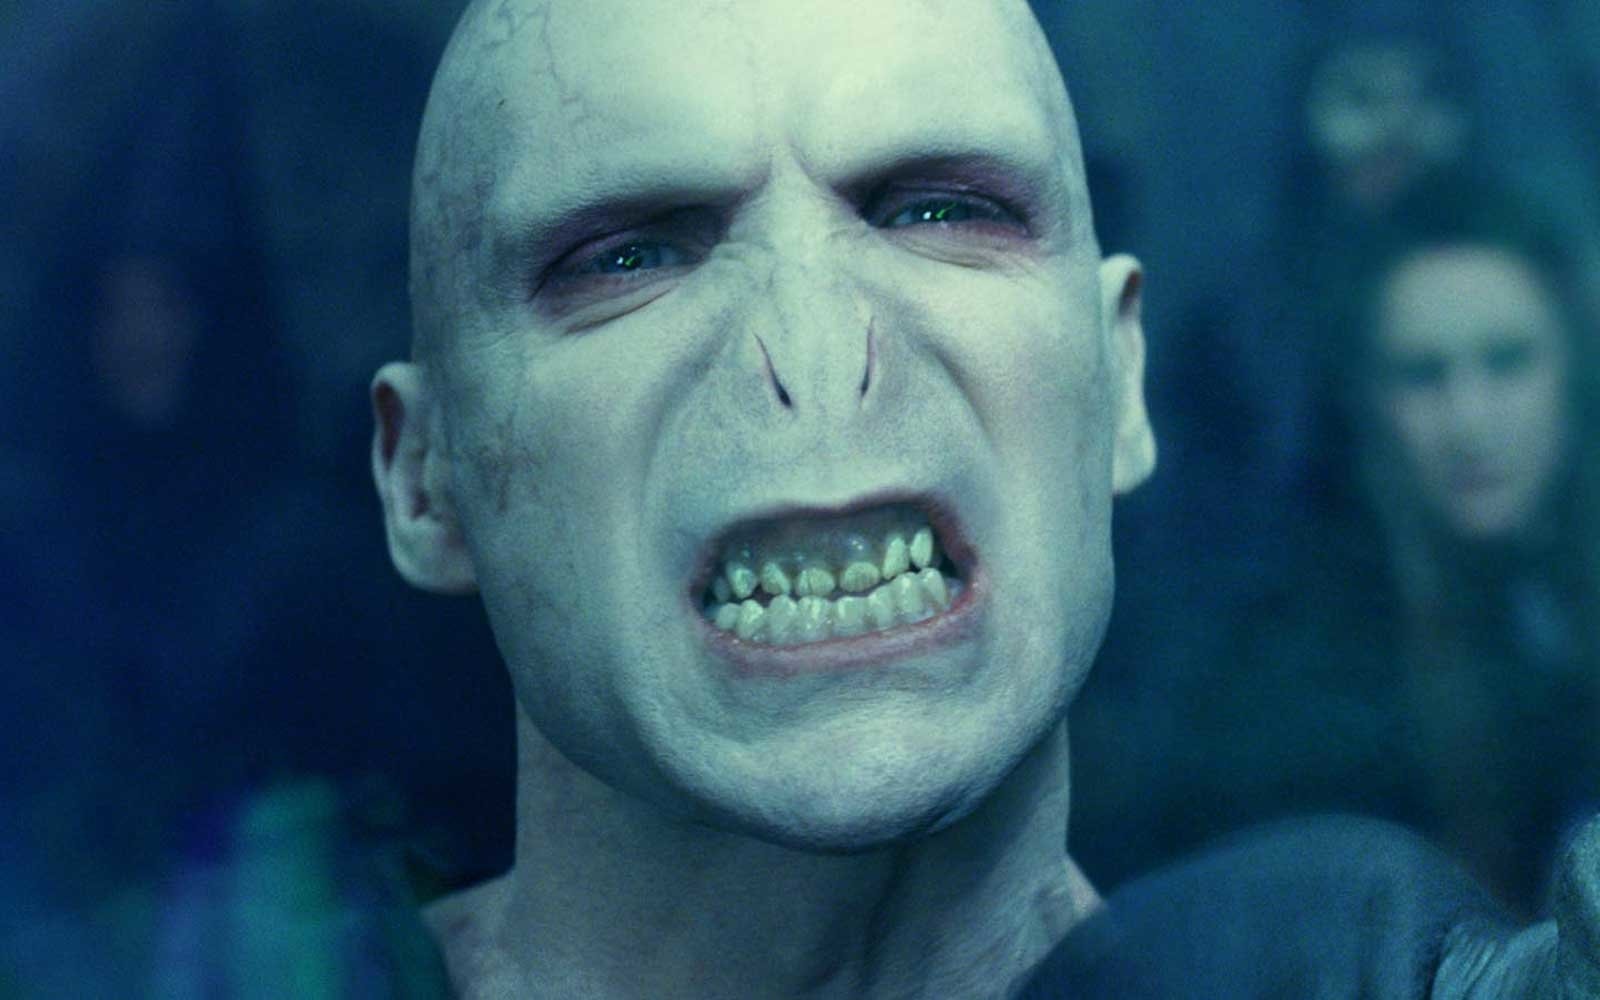 voldemort had a hilarious dancing cameo in one of the